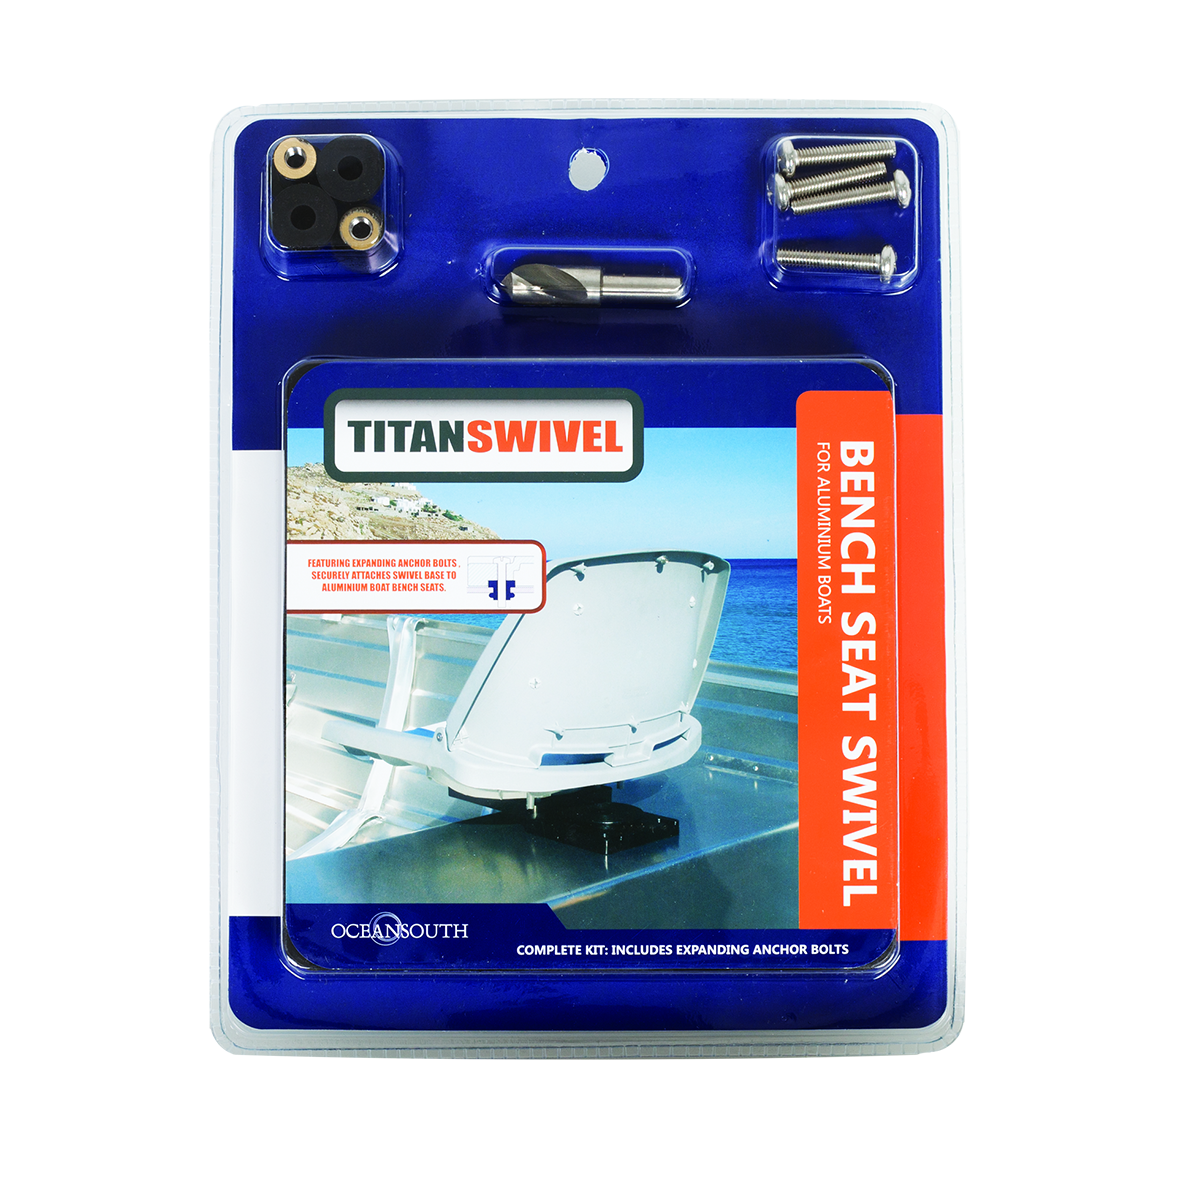 Titan Swivel Complete Kit Box